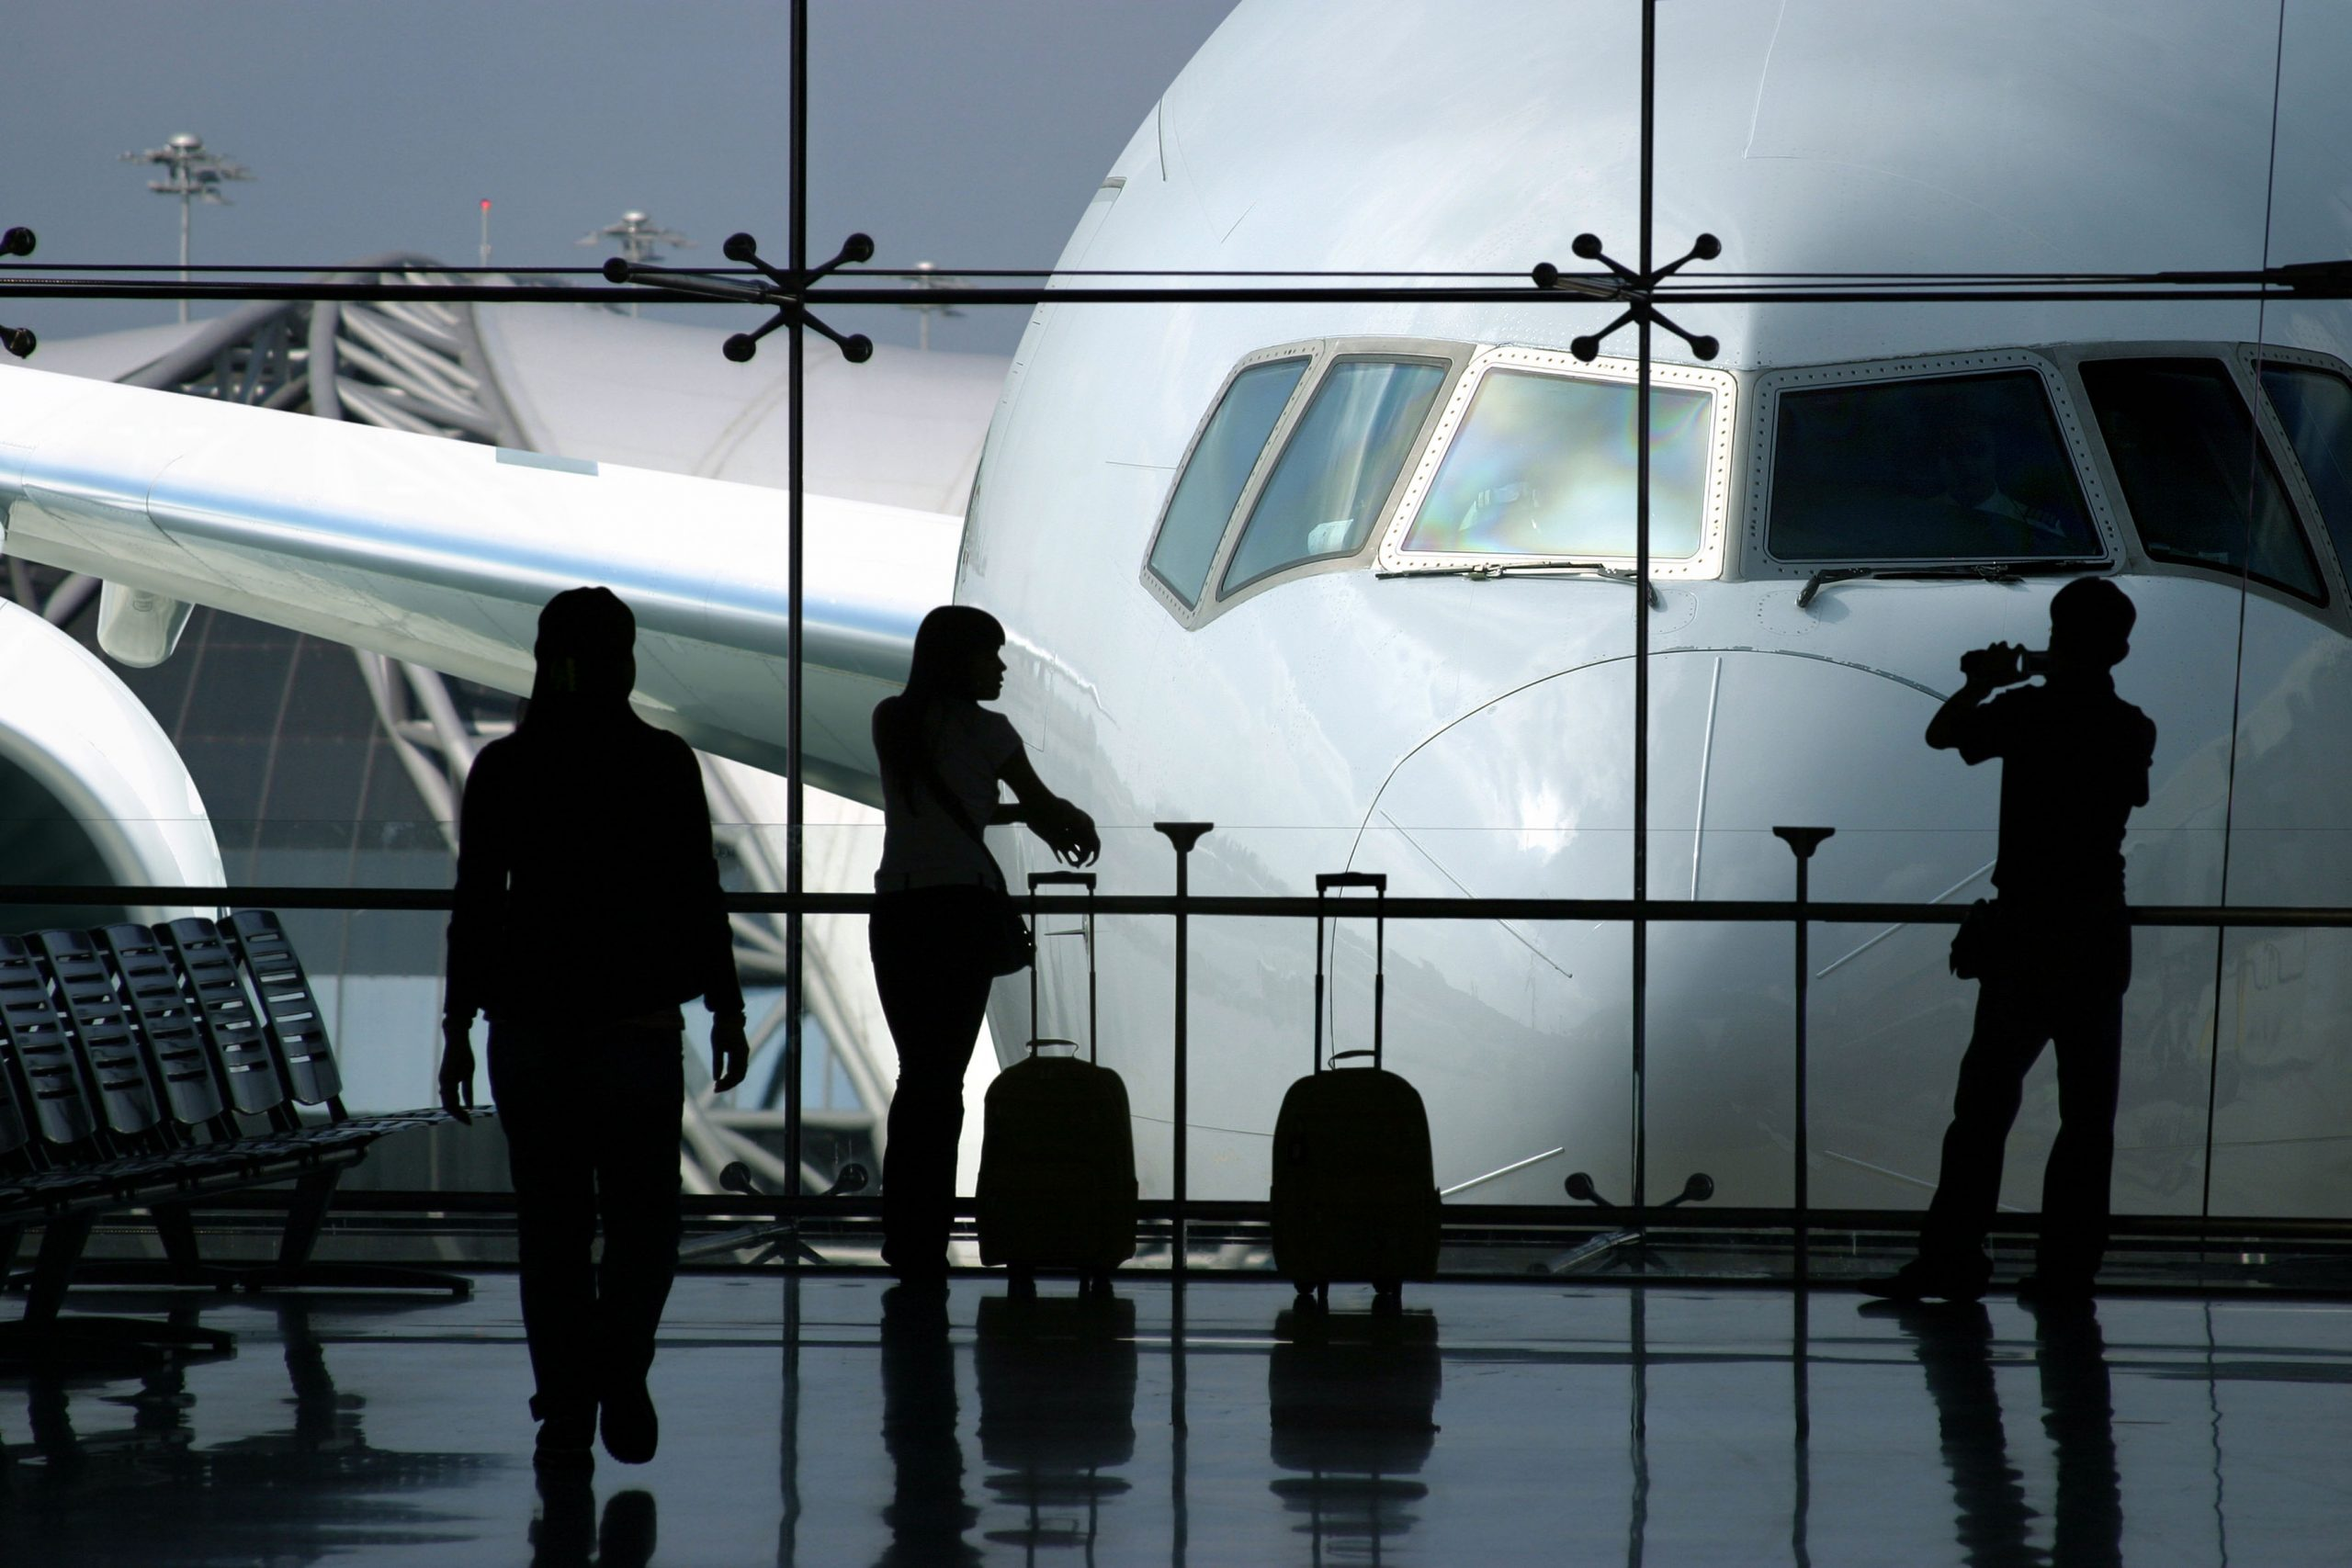 Air Travel Safe Without Social Distancing - A4E